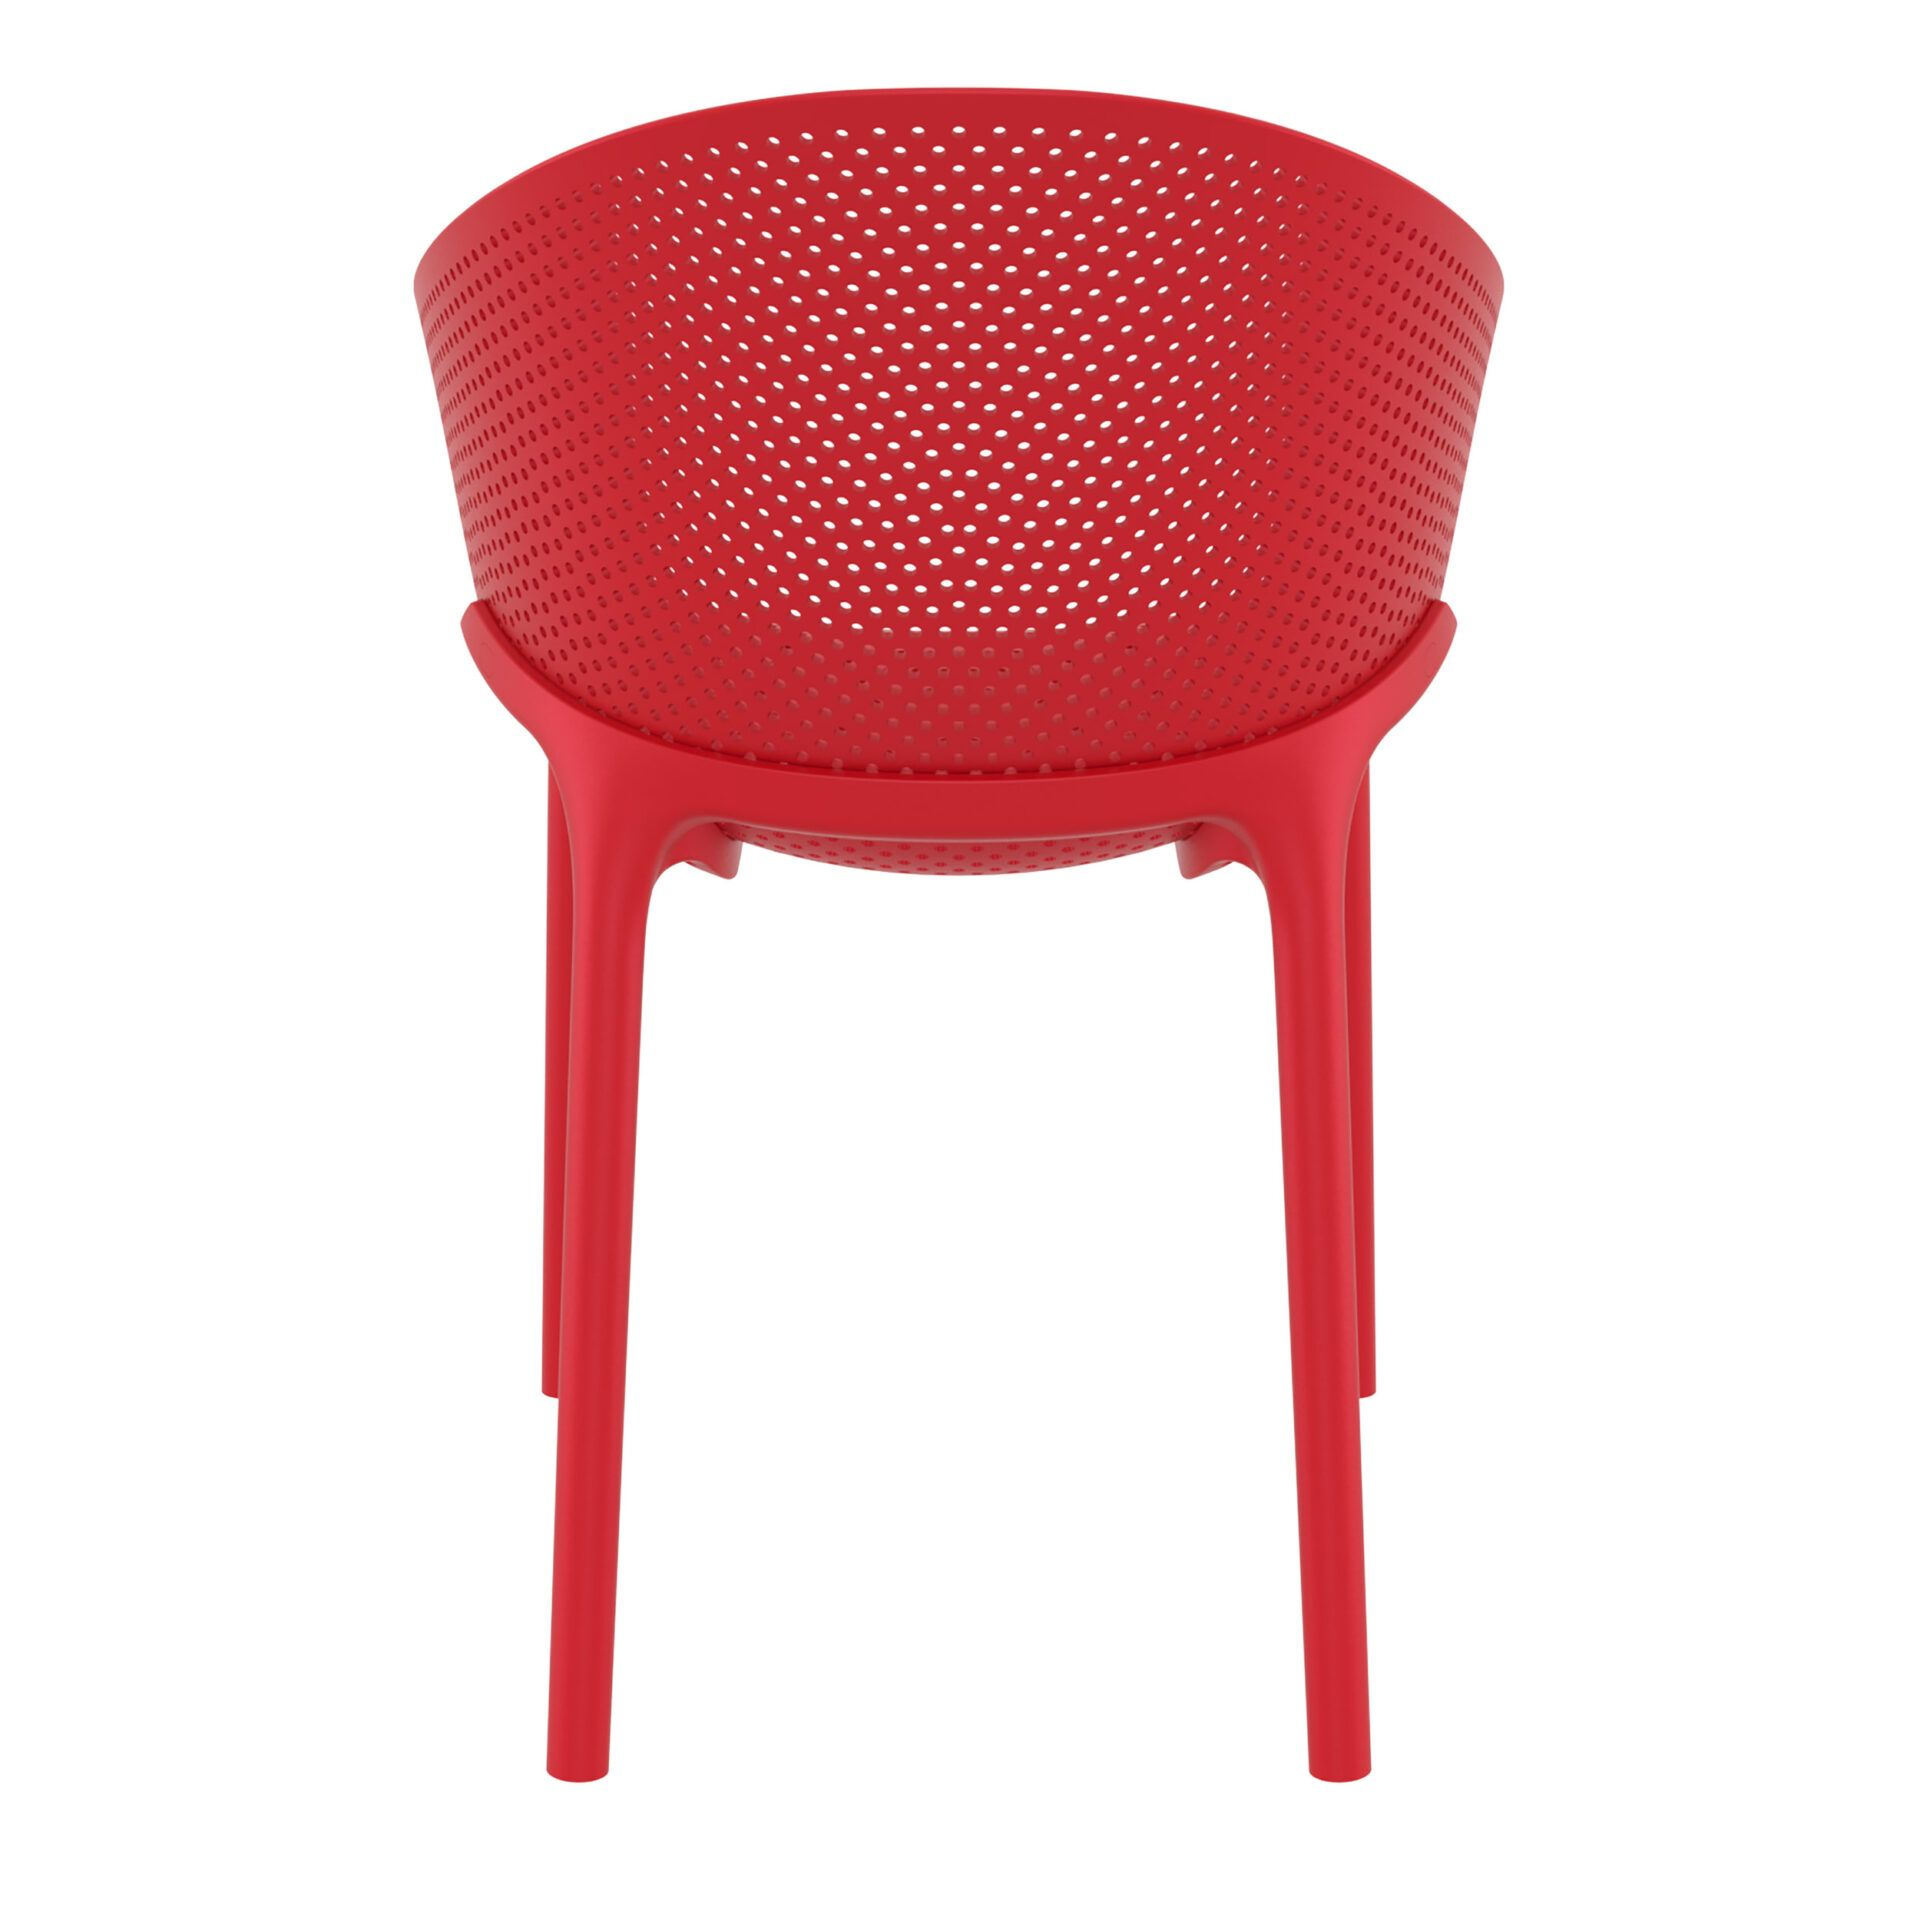 outdoor seating polypropylene sky chair red back